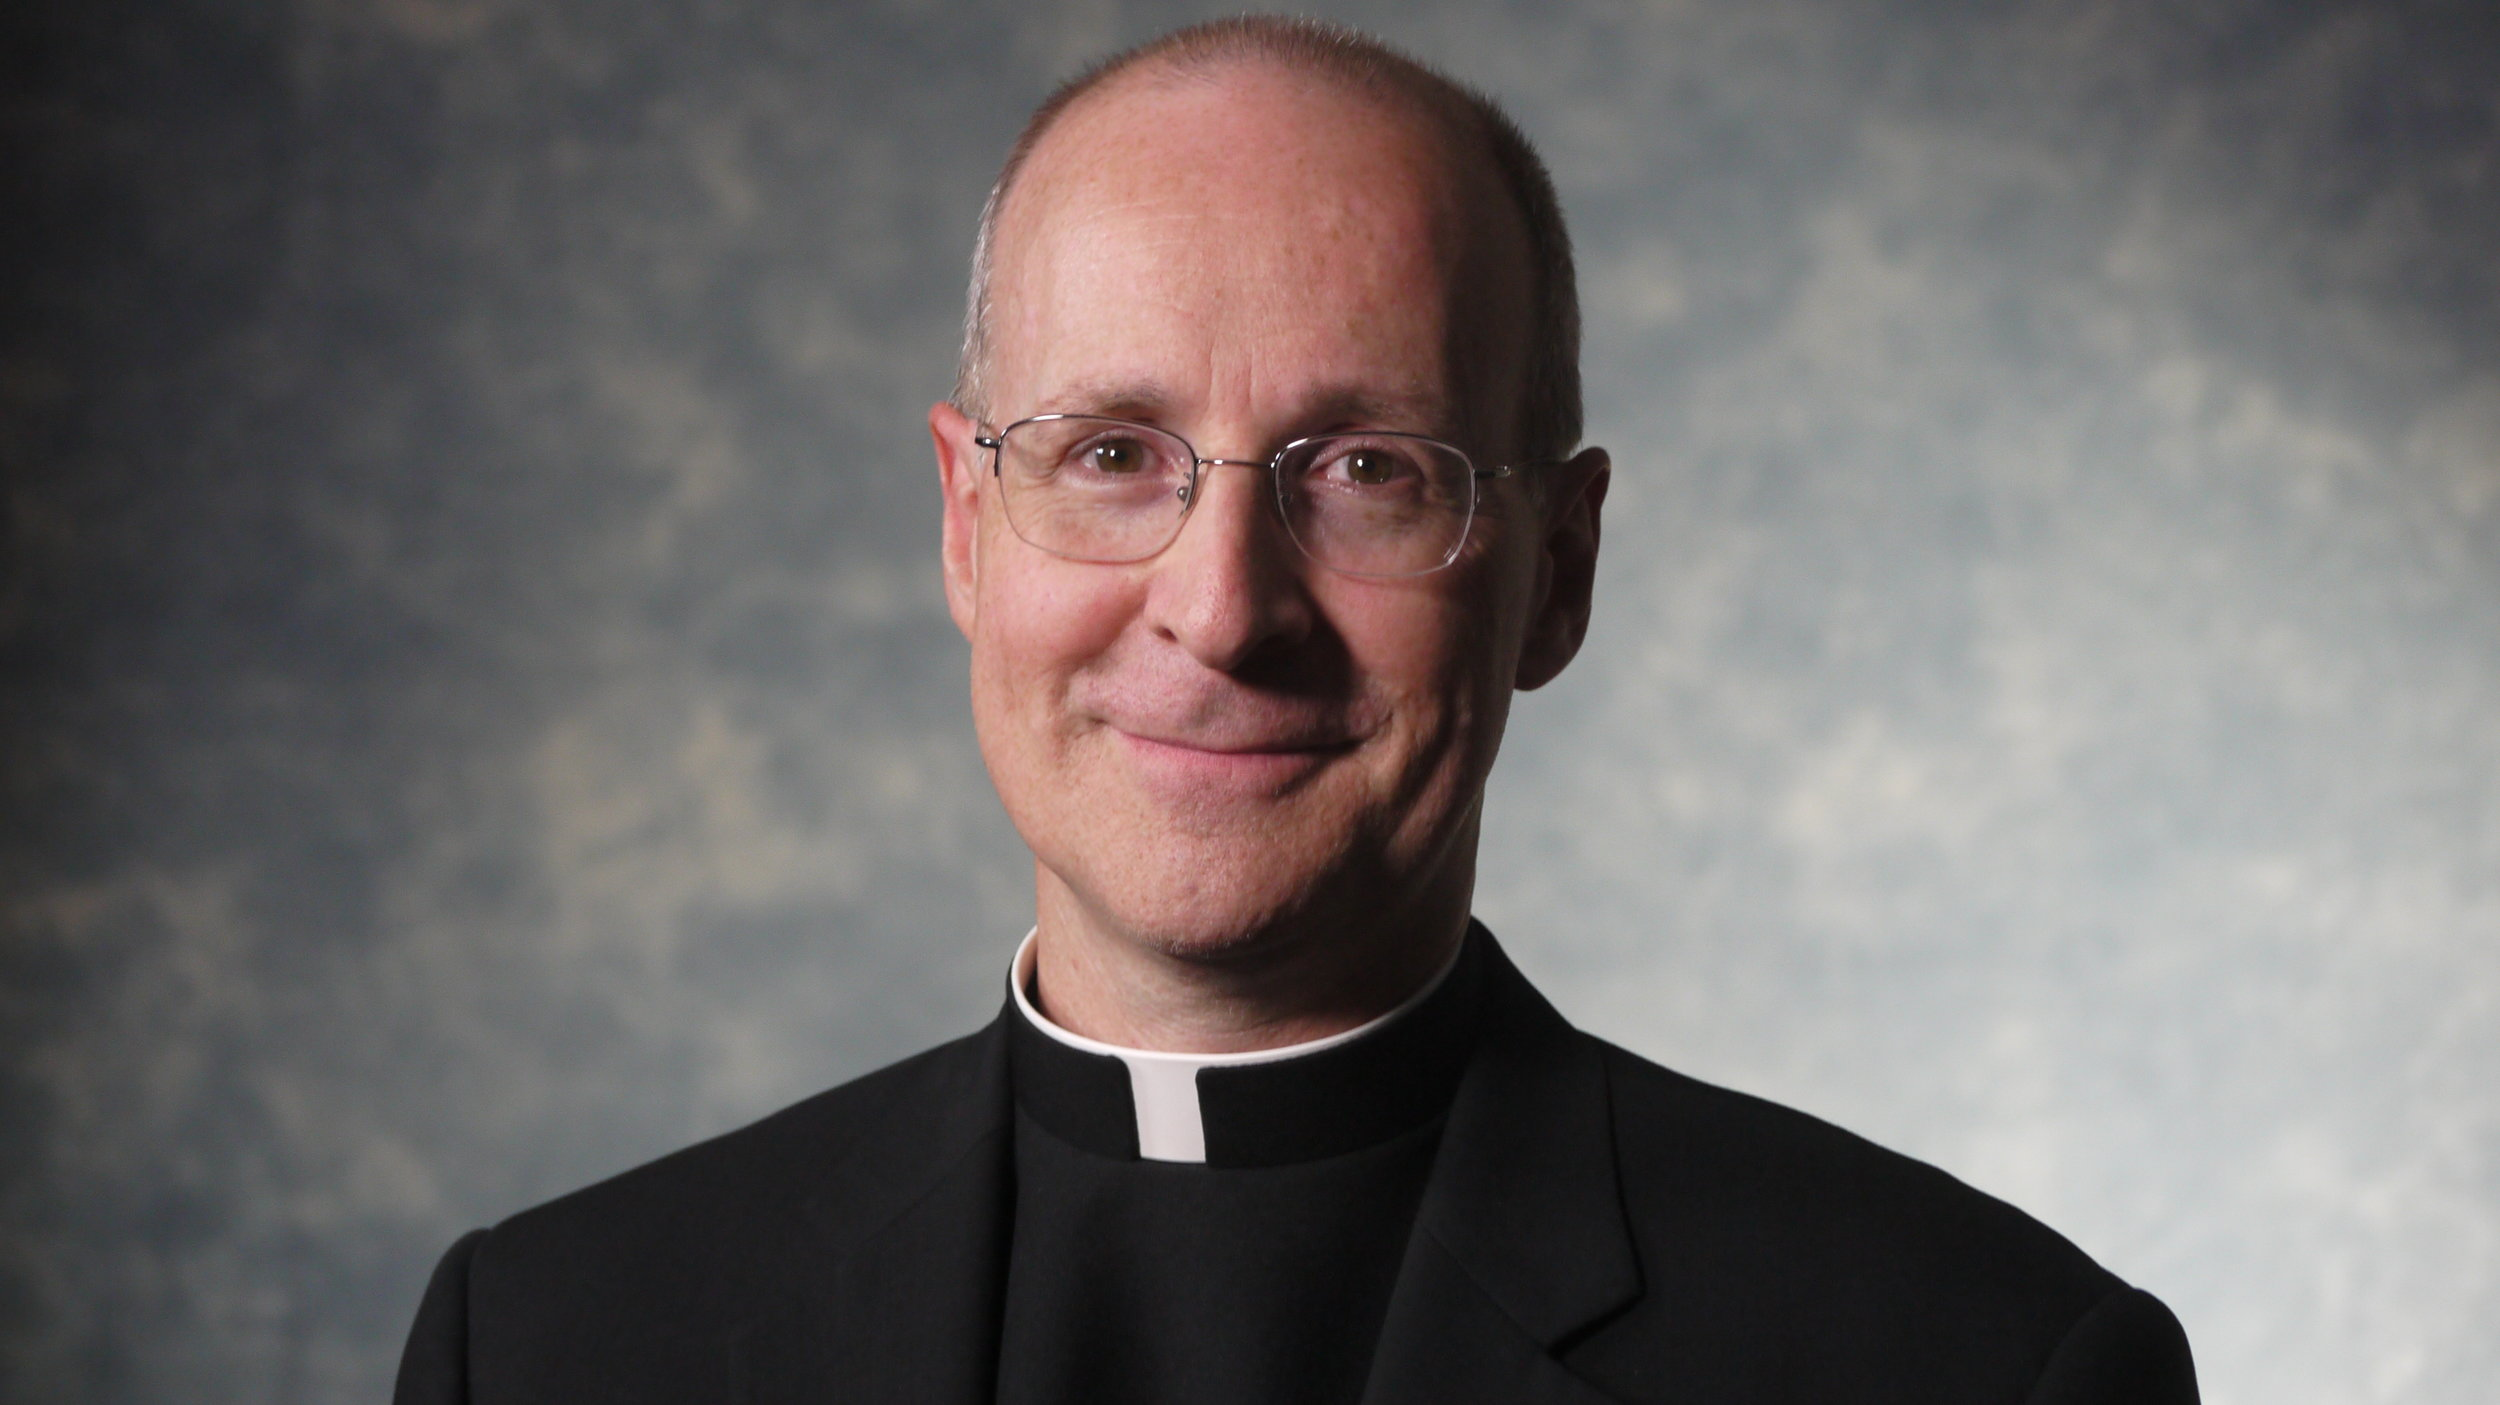 READ:Why I kept my questions for the Rev. James Martin to myself - Article by Jacob Lupfer, Religion News Service, about LGBT Catholics and their struggle with identity in their Church